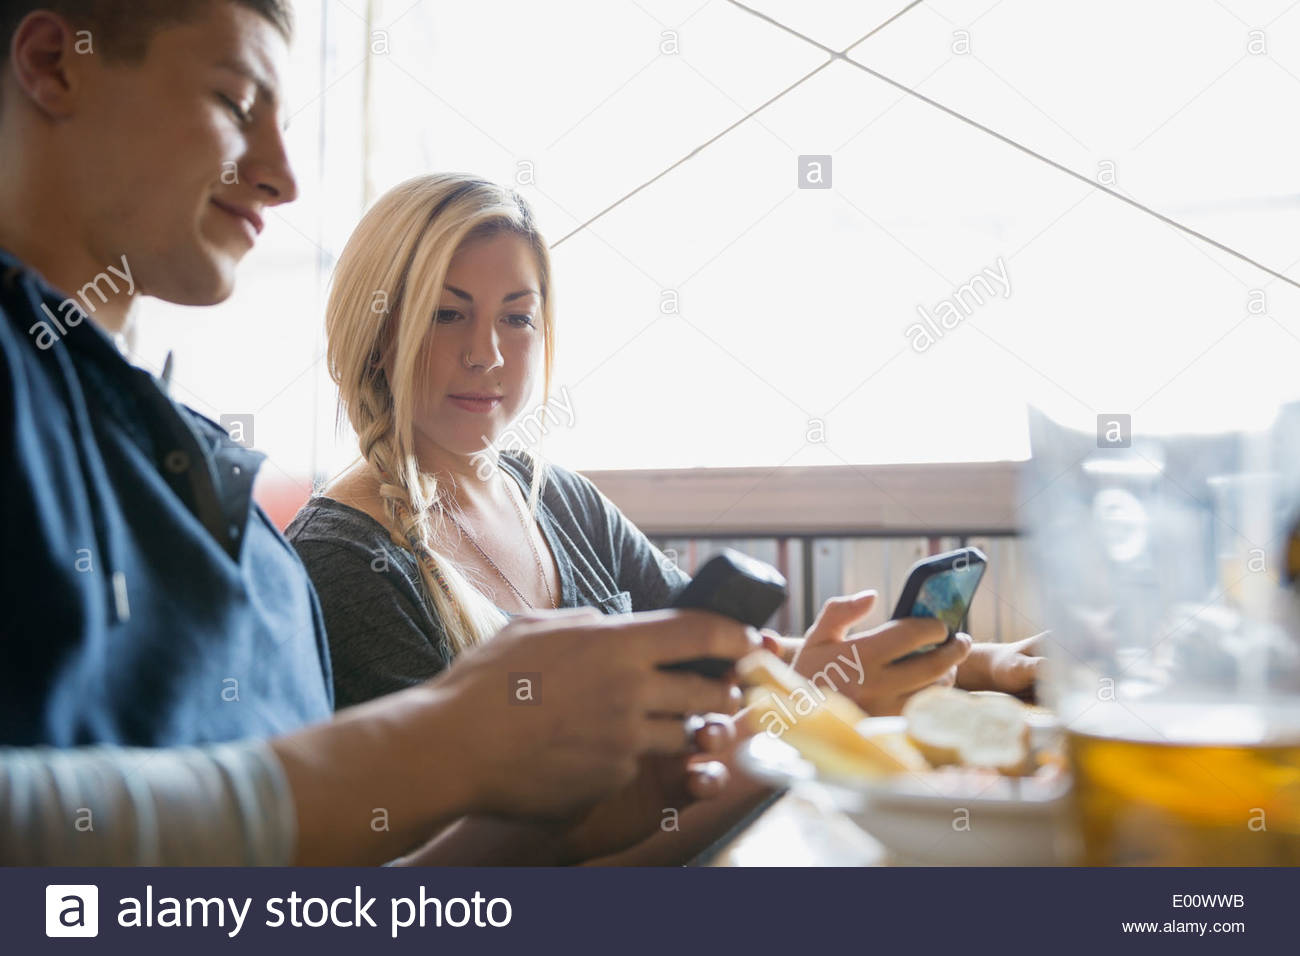 Couple text messaging with cell phones at brewery - Stock Image